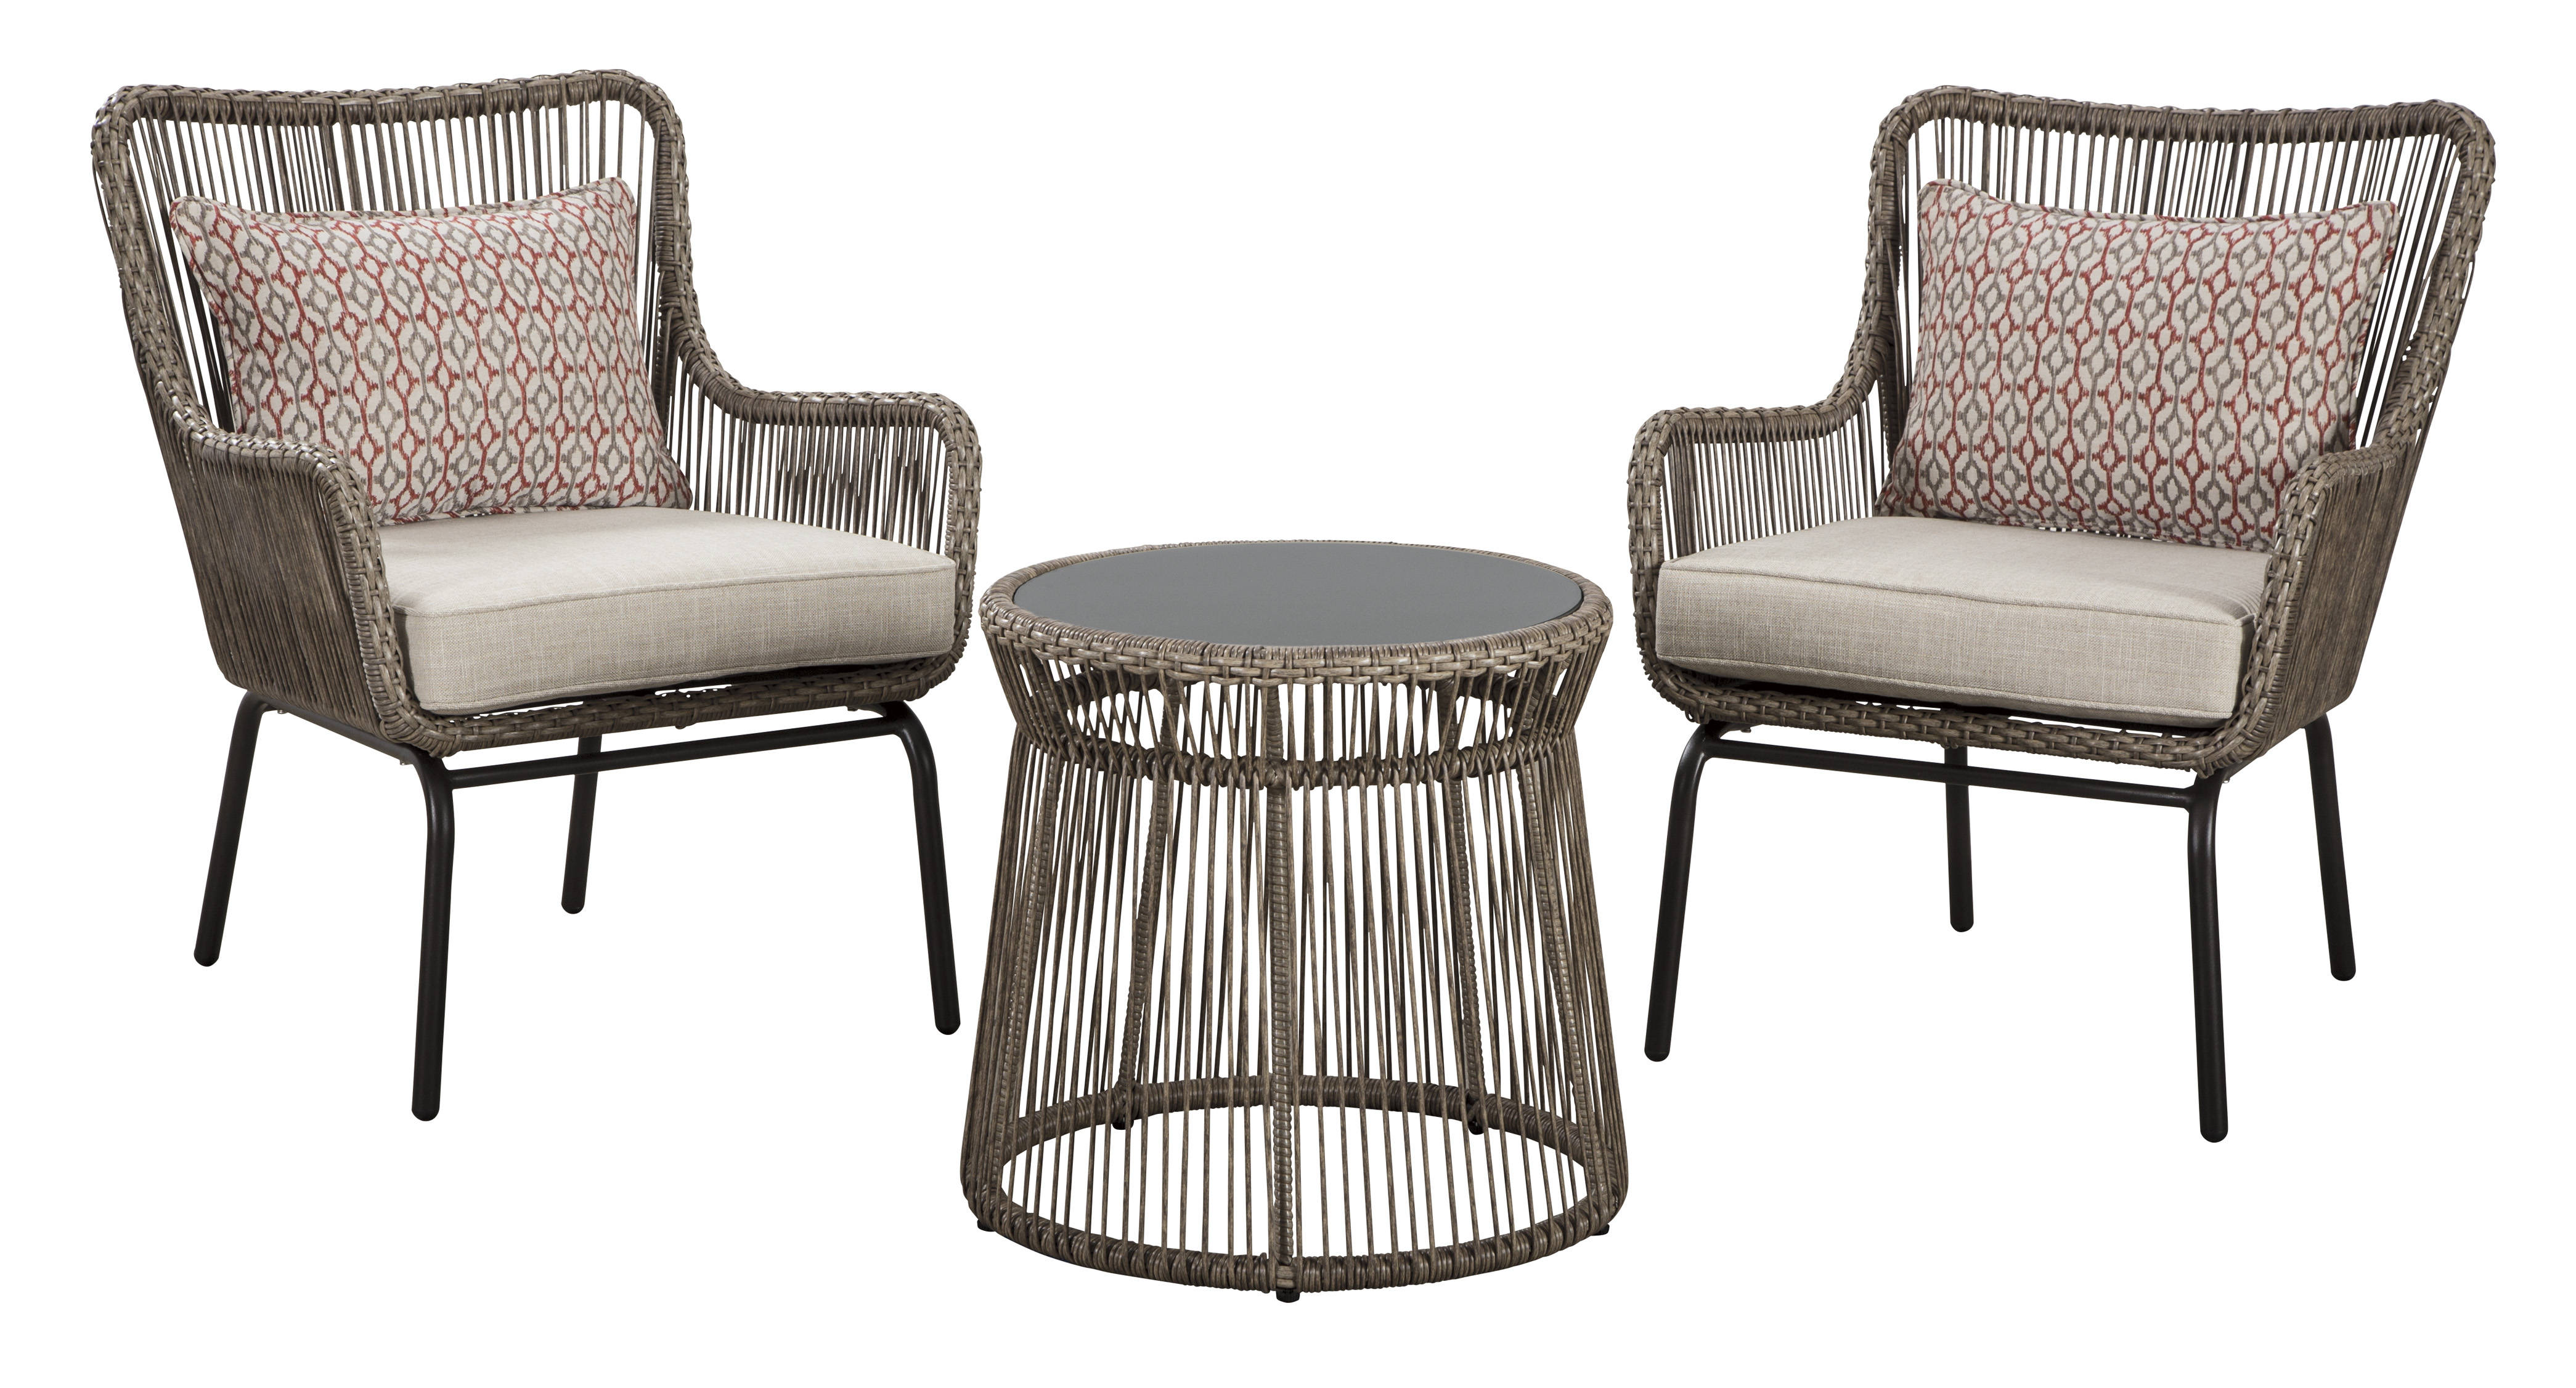 Ashley Furniture Cotton Road Brown 3pc Outdoor Chair And Ottoman Set